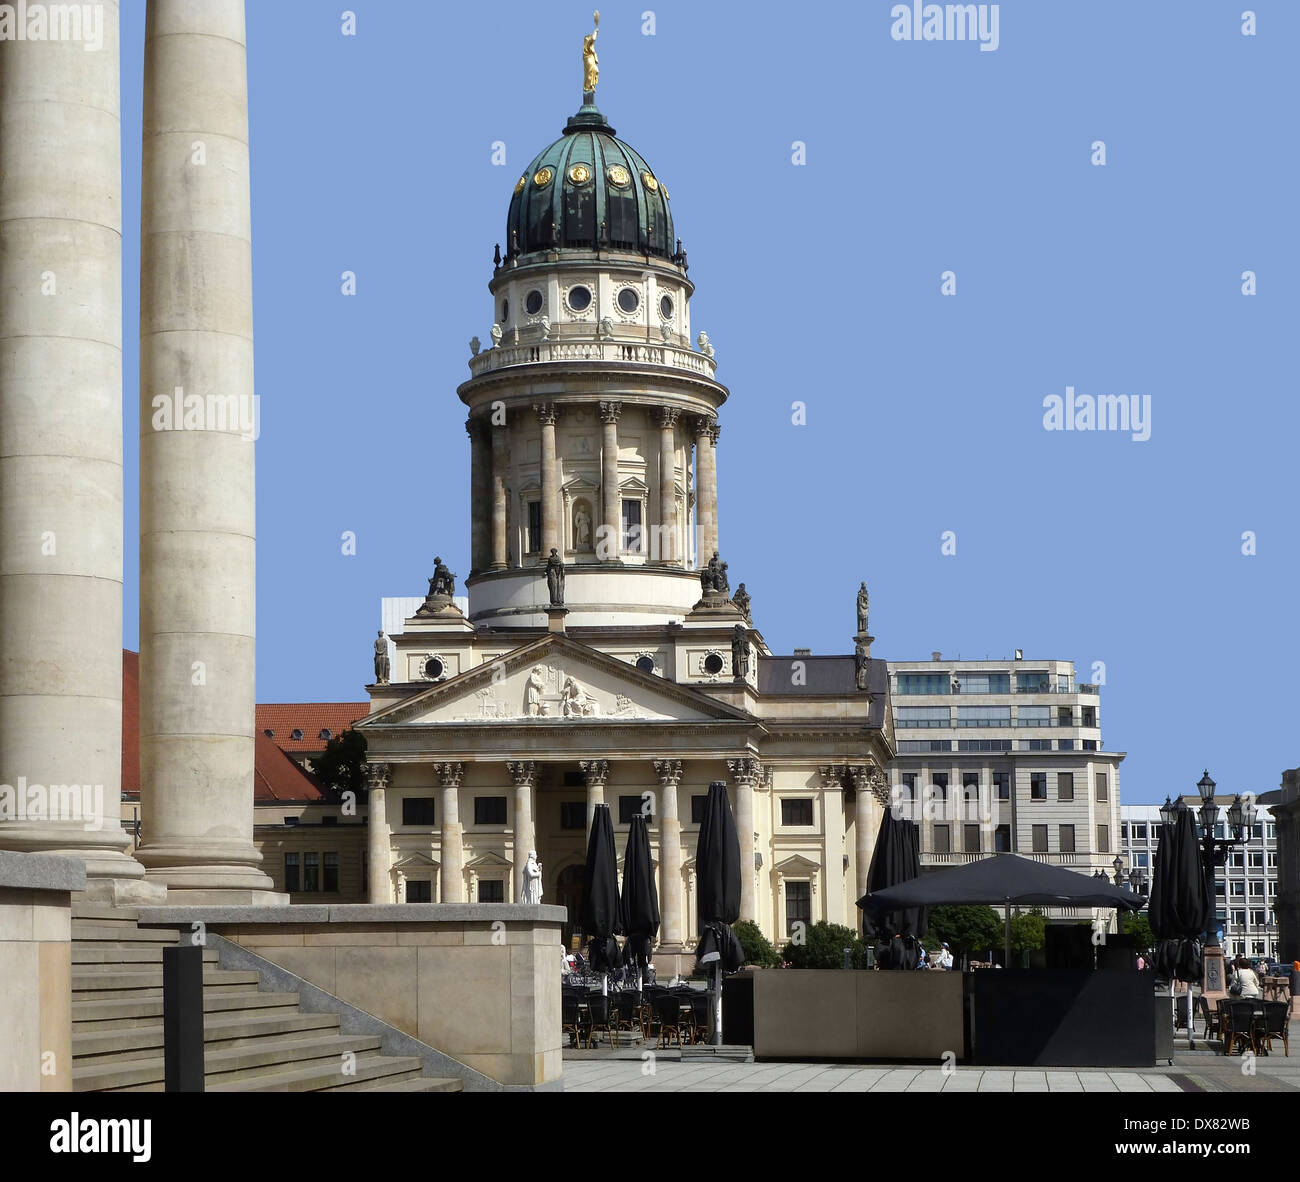 prominent building named French Cathedral in Berlin (Germany) Stock Photo